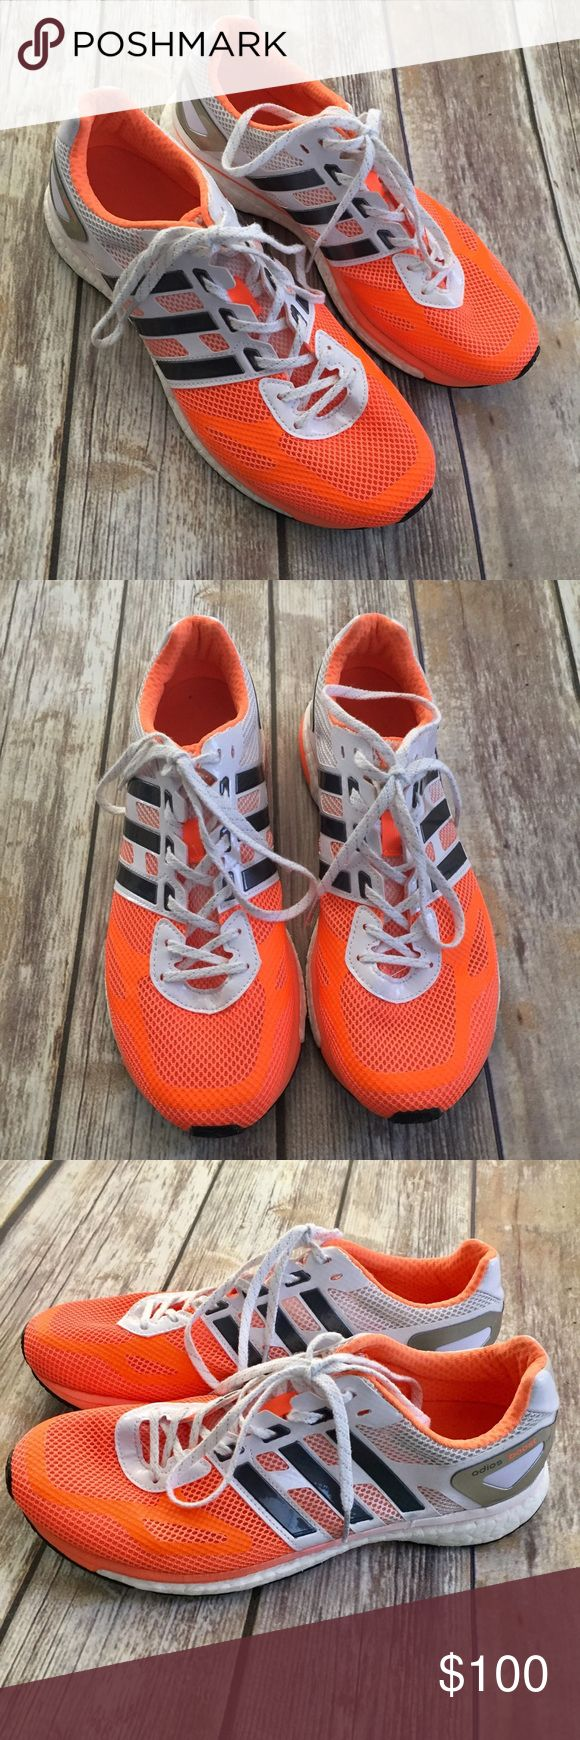 Adidas Boost orange White Gray Shoes EXCELLENT! Orange/white/gray women's Adidas Adios Boost in size 9.5. This style runs small and these fit like a 9. These are in excellent condition and were only worn two times for about an hour each time. ❌Trades/holds❌ I ship within 72 hours of your order. I accept REASONABLE offers. Poshmark rules only. Thank you for 👀! 🚭🐩b2 Adidas Shoes Athletic Shoes